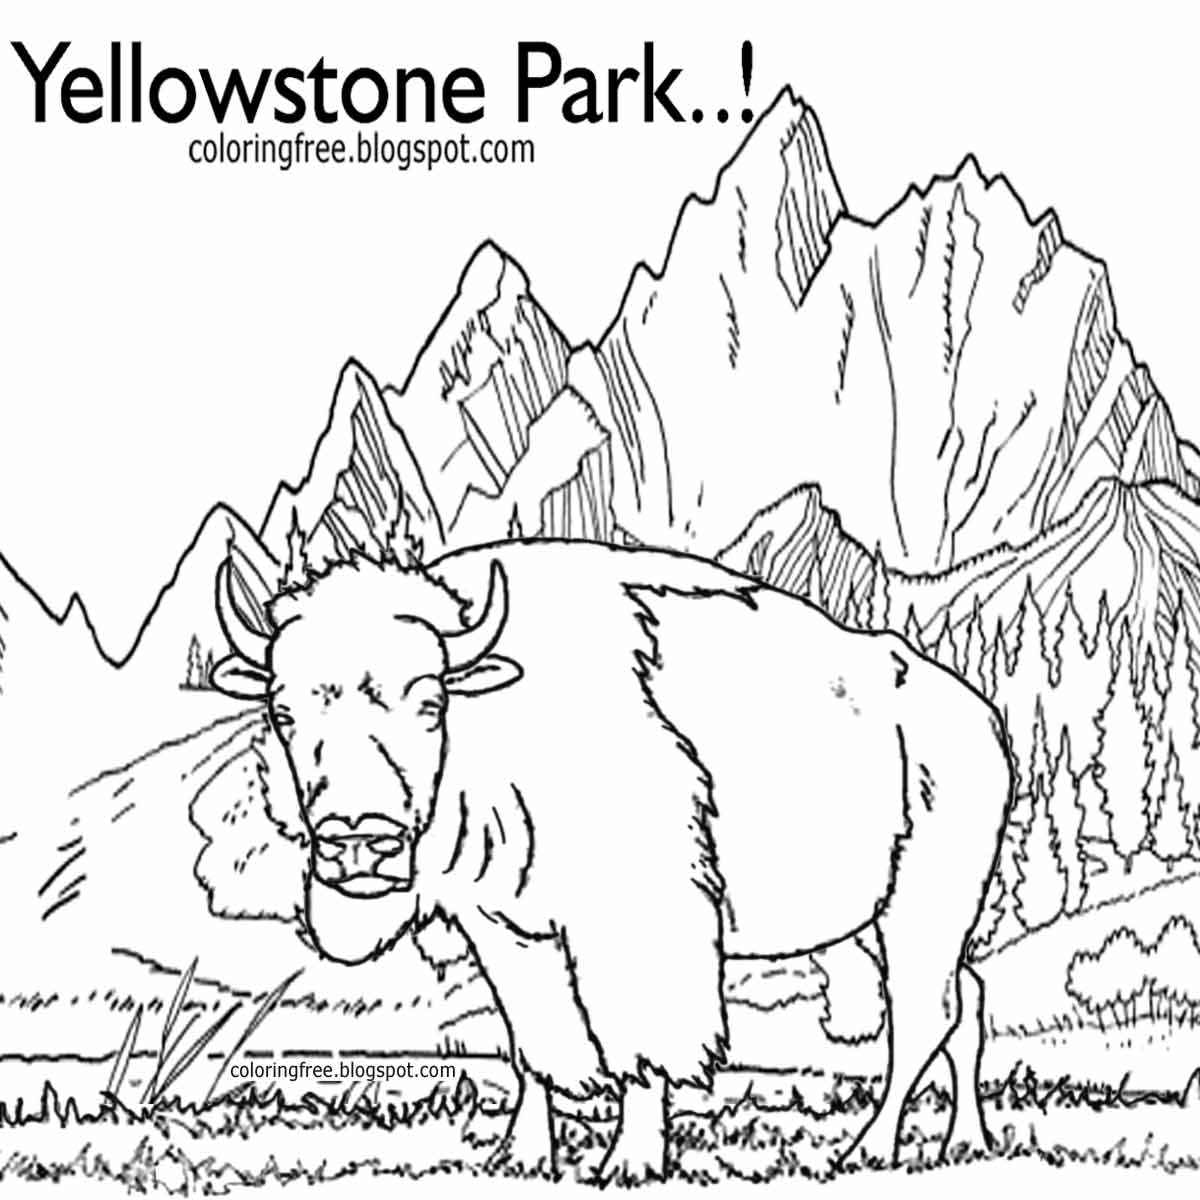 yellowstone national park coloring pages printable yellowstone park coloring american wildlife kids park yellowstone coloring national pages